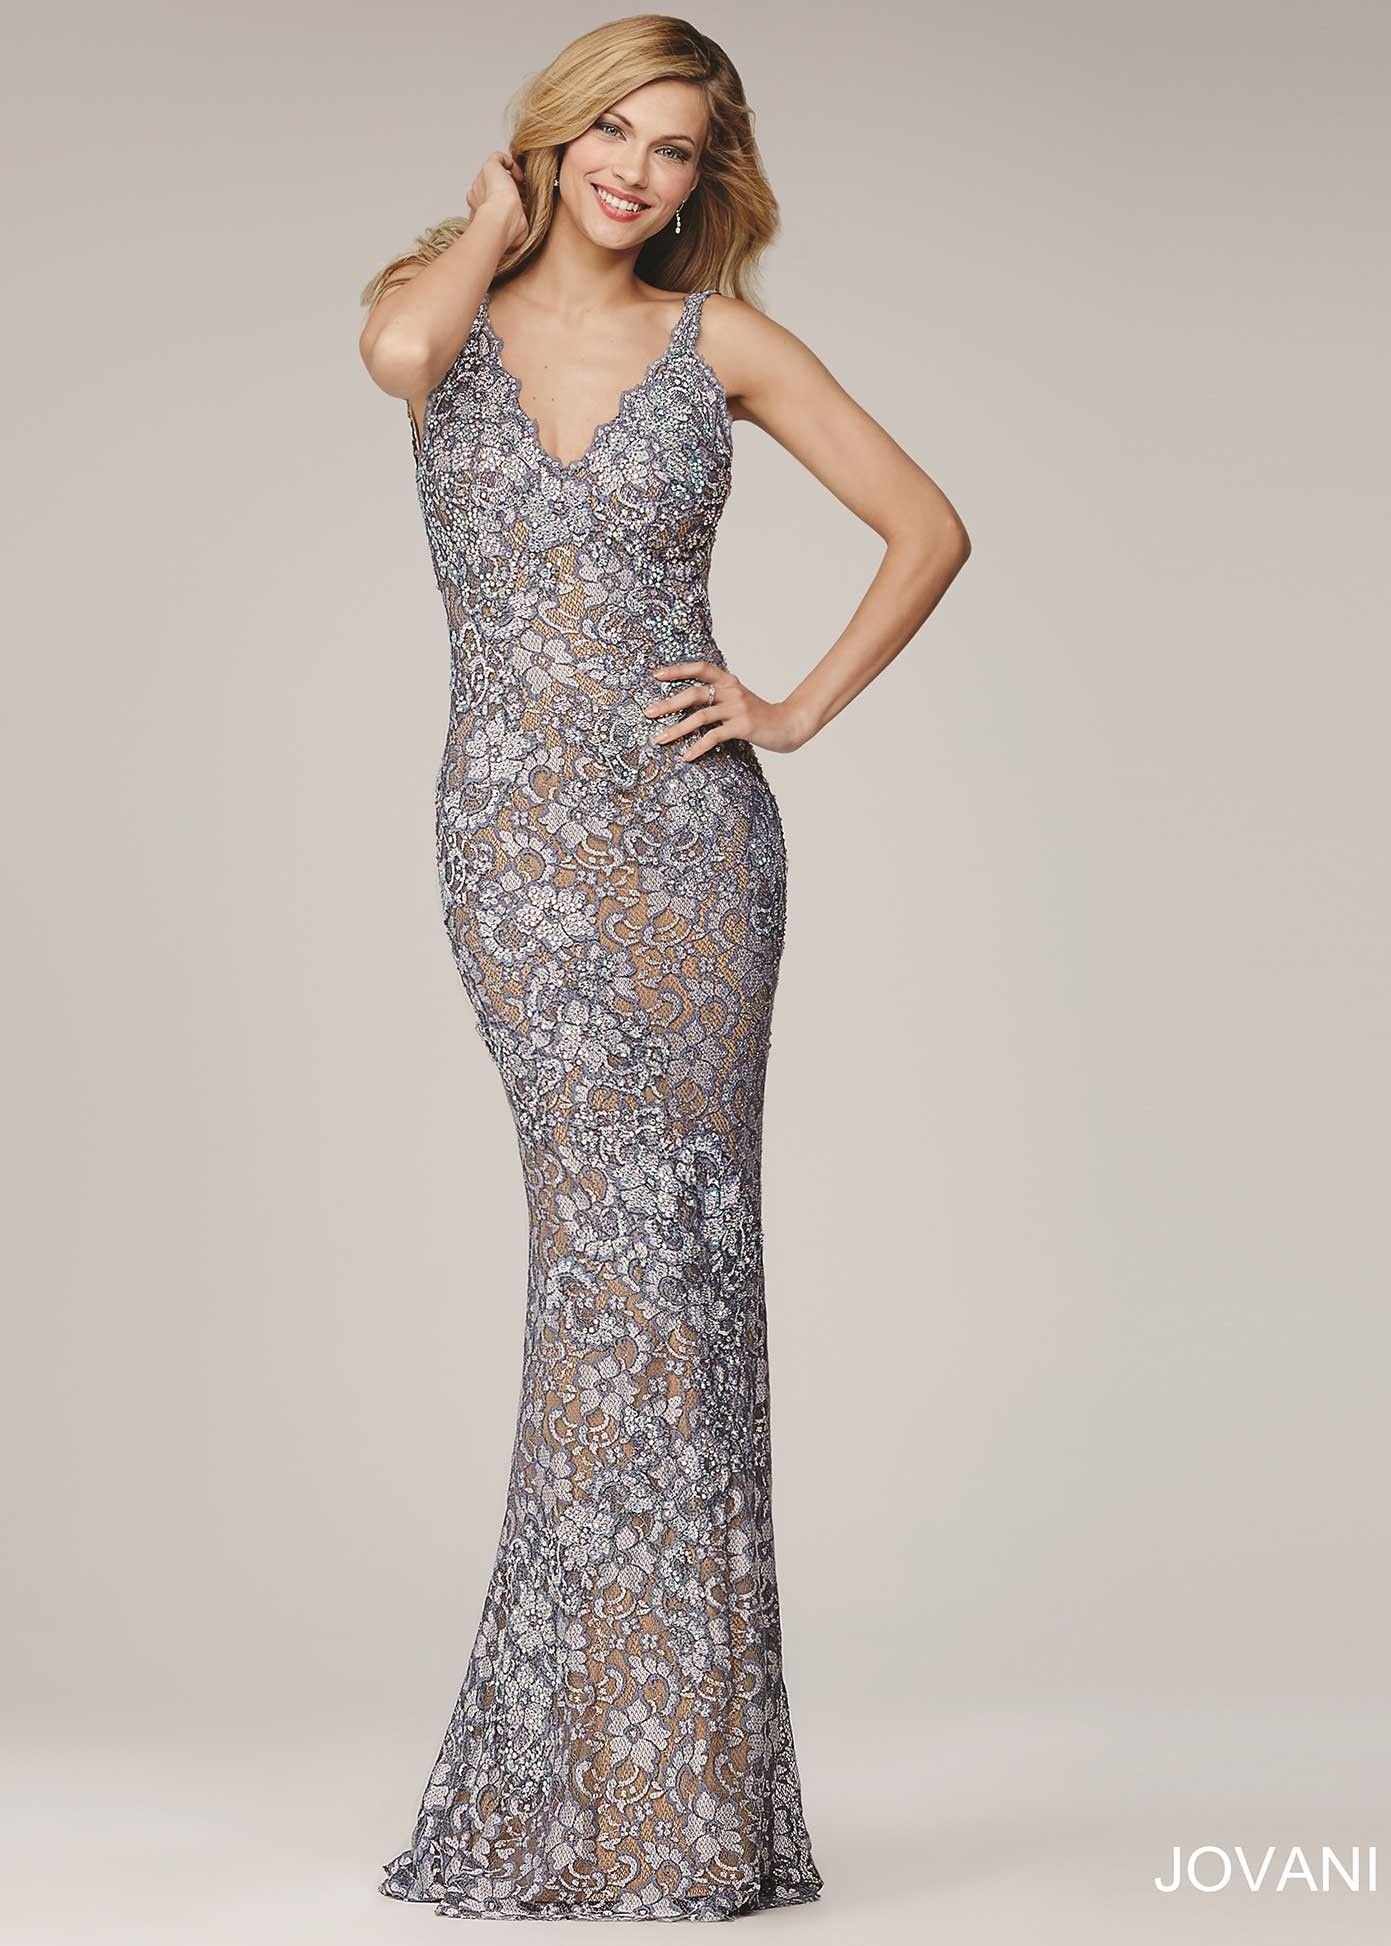 Jovani 26533 Silver/Nude Magnificent Stretch Lace Open Back Dress ...